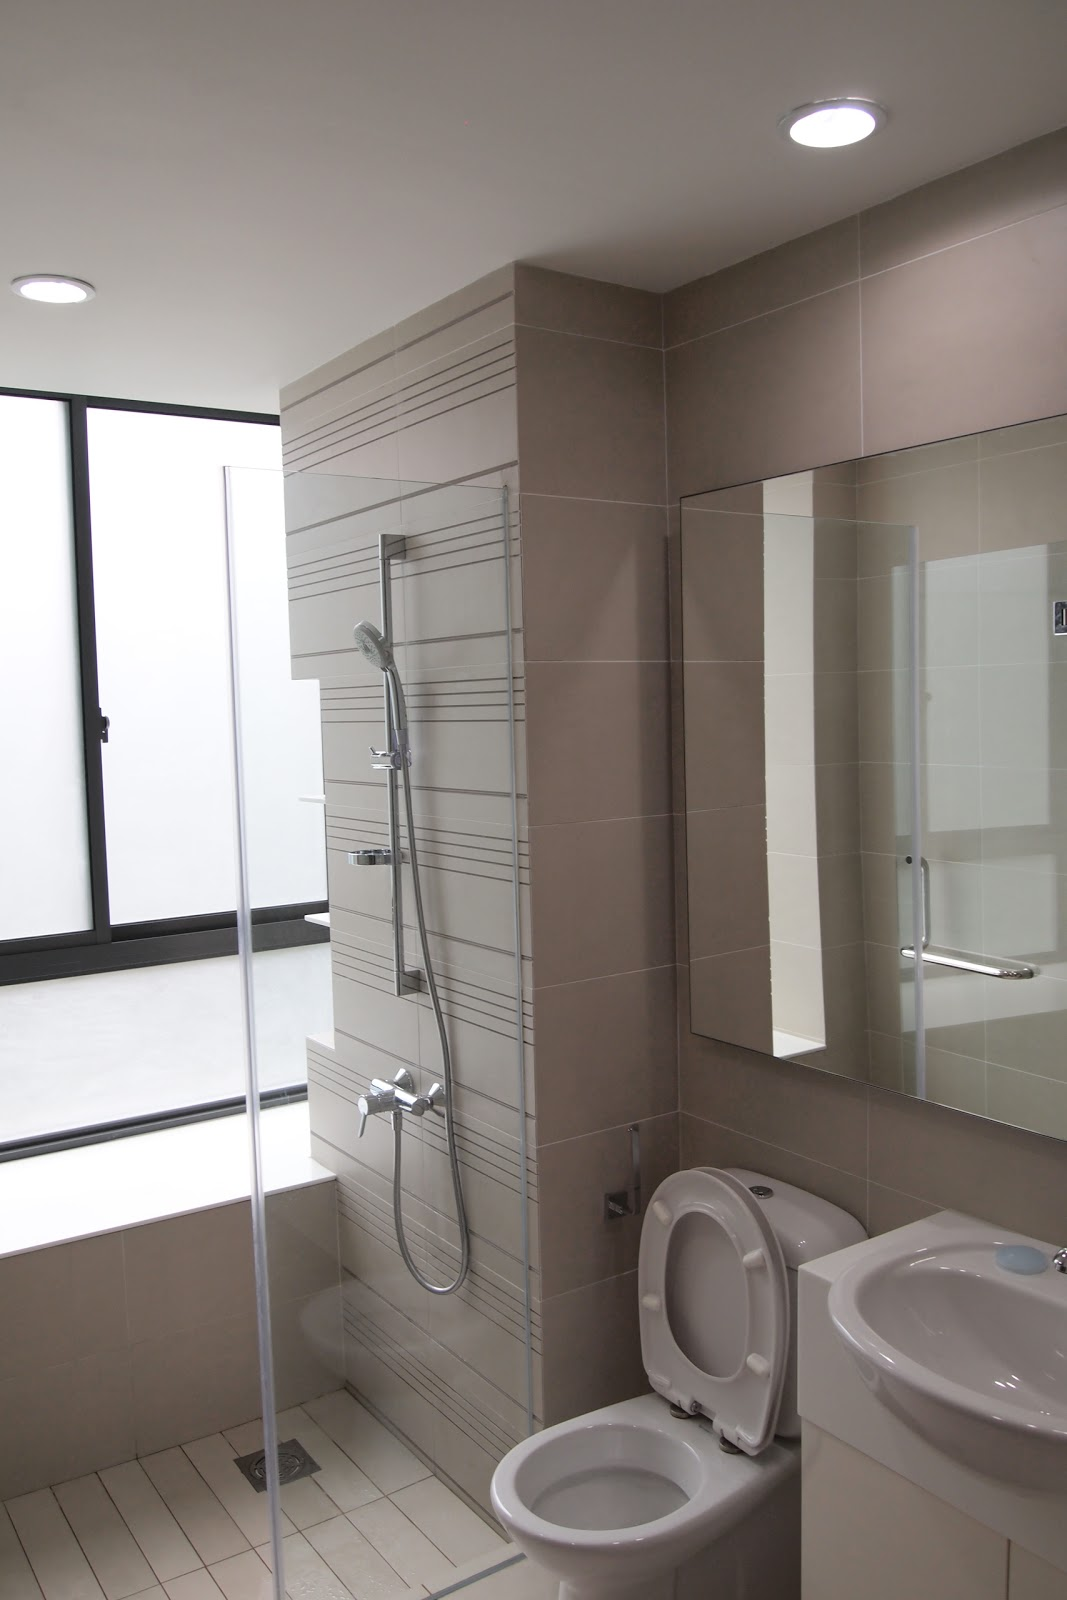 Plaster Ceiling  Partition Drywall Singapore Bathroom